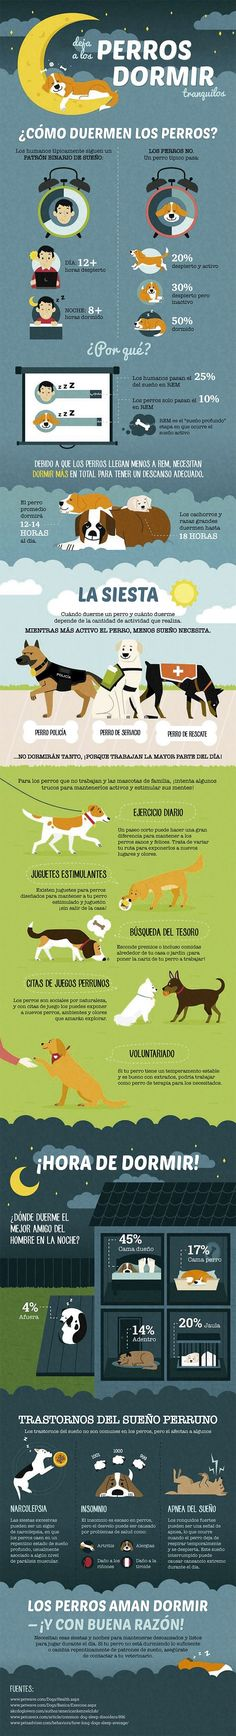 Dog Infographic Let Sleeping Dogs Lie Www Dailydogtag C Many people store fat in the belly, and losing fat from this area can be hard. Here are Dog Infographic Let Sleeping Dogs Lie Www Dailydogtag C tips to lose belly fat, based on studies. Yorkie, Chihuahua, Pomeranian, Dog Care Tips, Pet Care, Puppy Care, Education Canine, Sleeping Dogs, Dog Training Tips